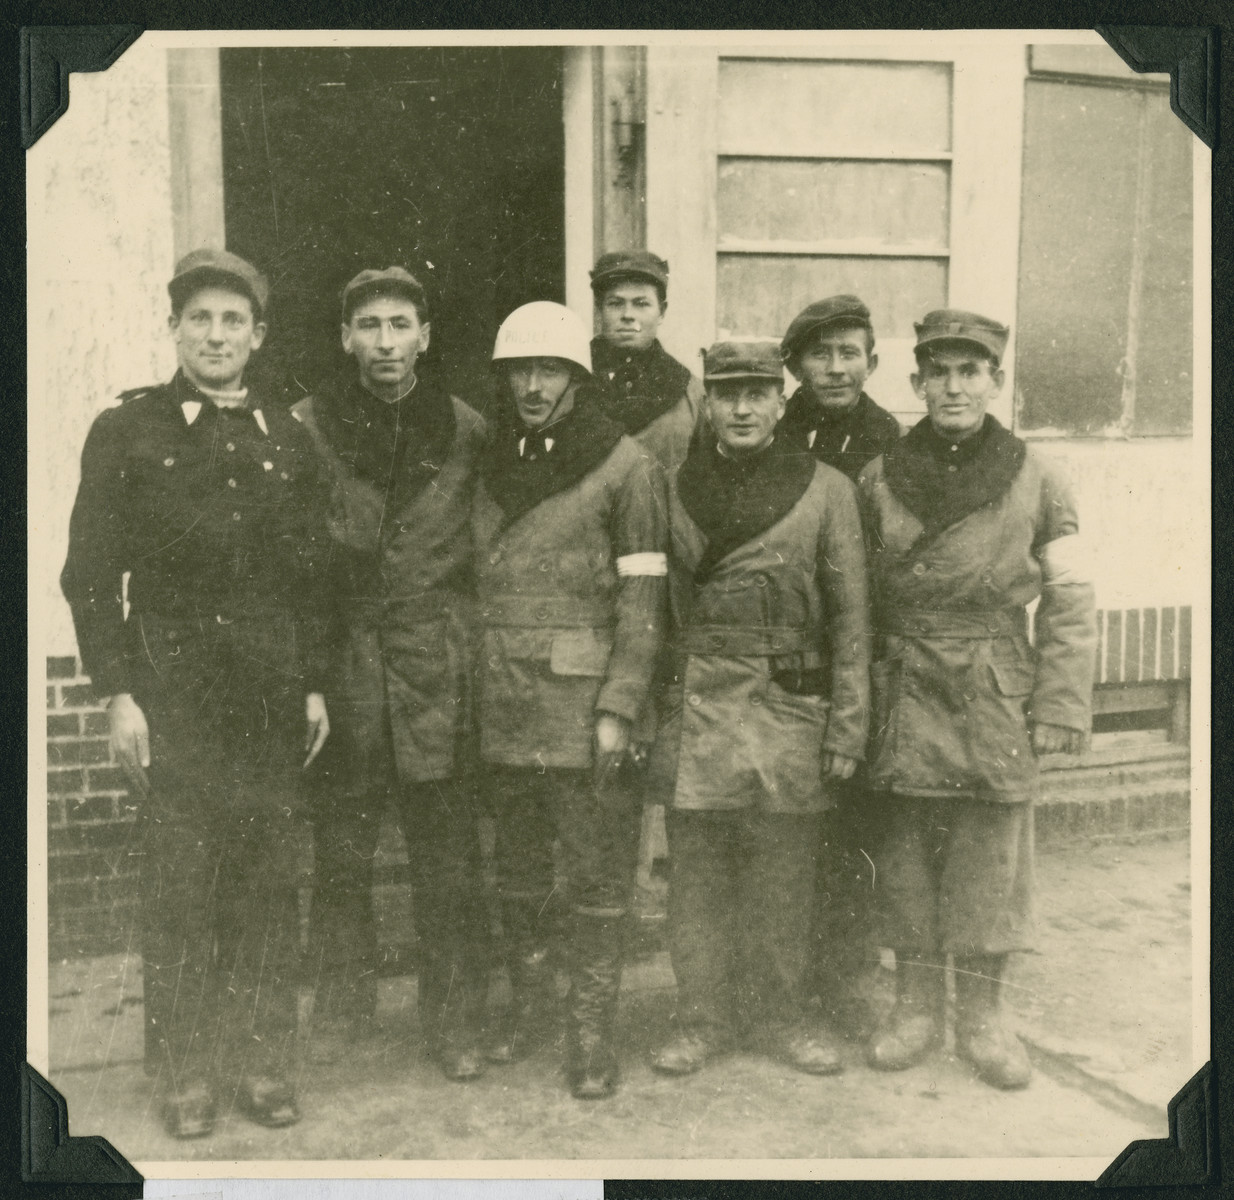 Group portrait of men, including Jewish police, in the Wetzlar displaced persons camp.